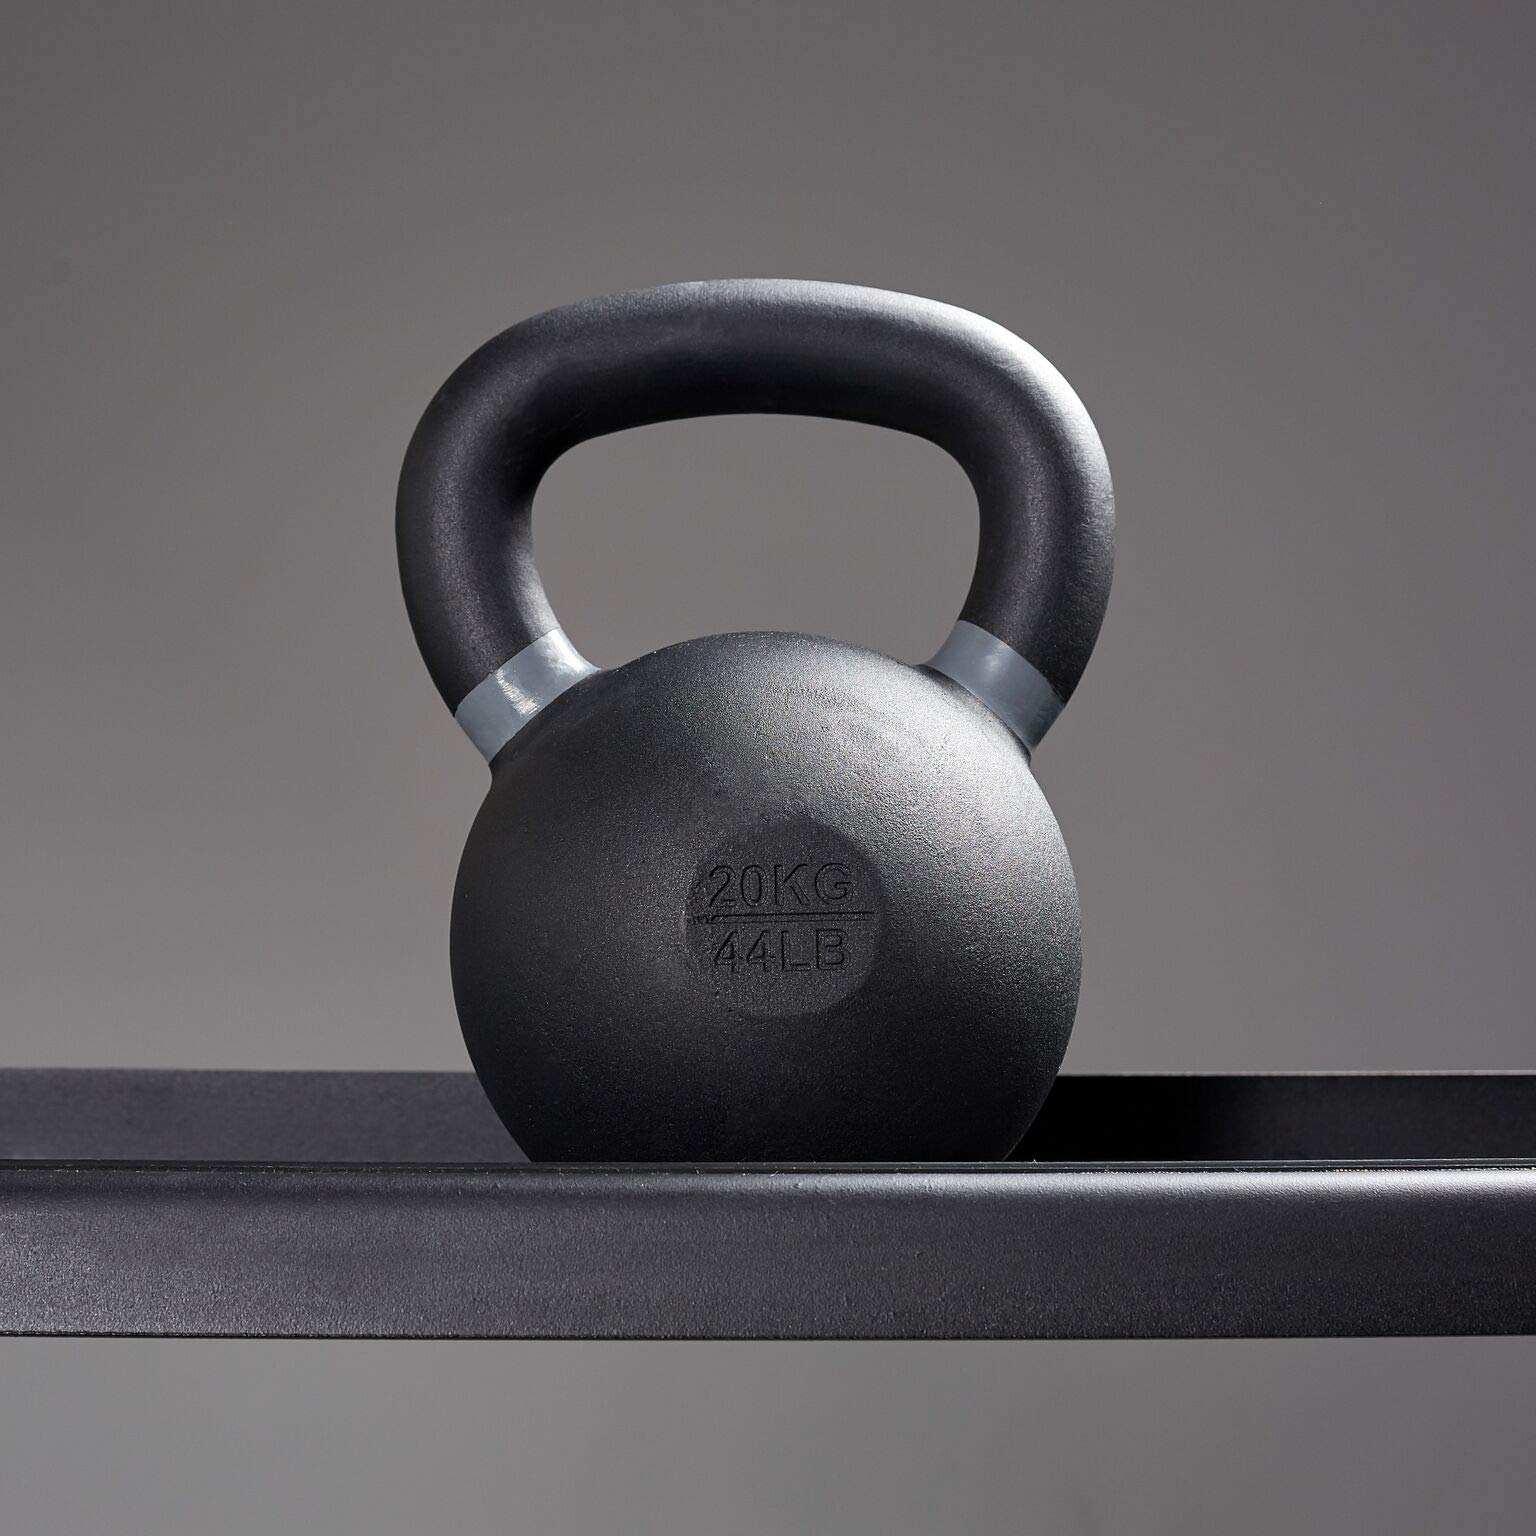 Rep 20 kg Kettlebell for Strength and Conditioning by Rep Fitness (Image #3)